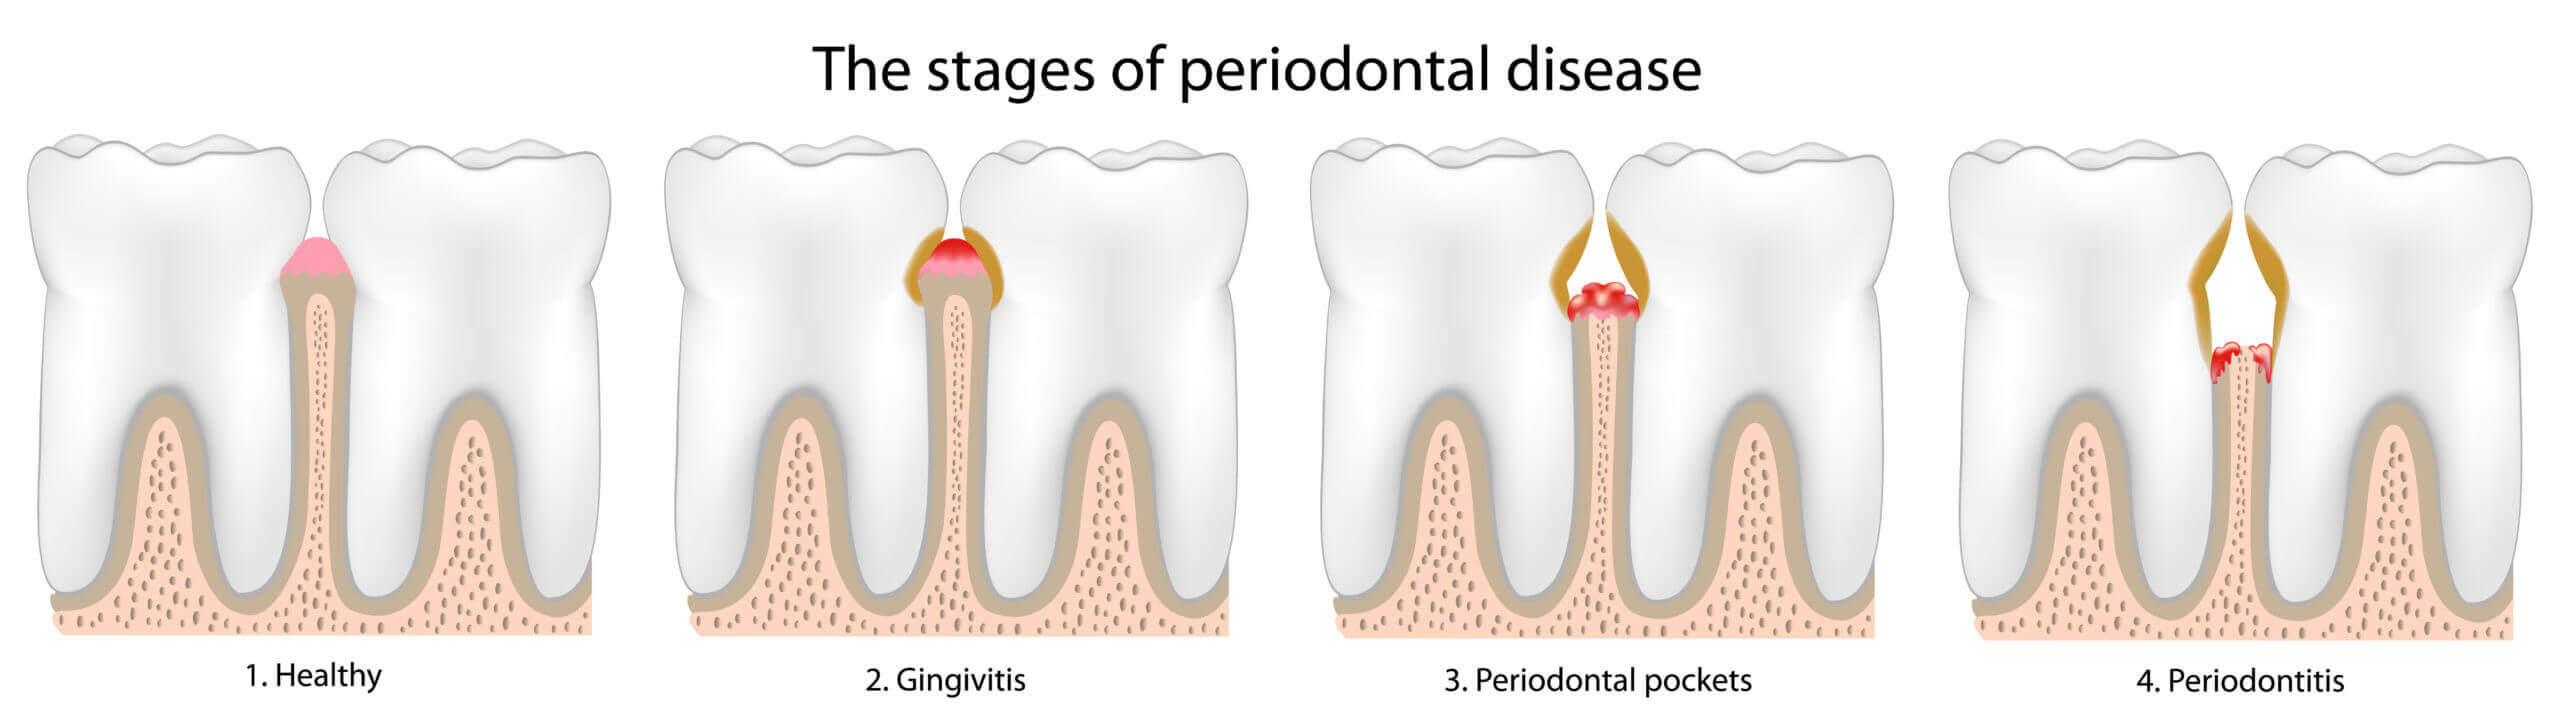 Artistic rendering describing the states of gum or periodontal disease